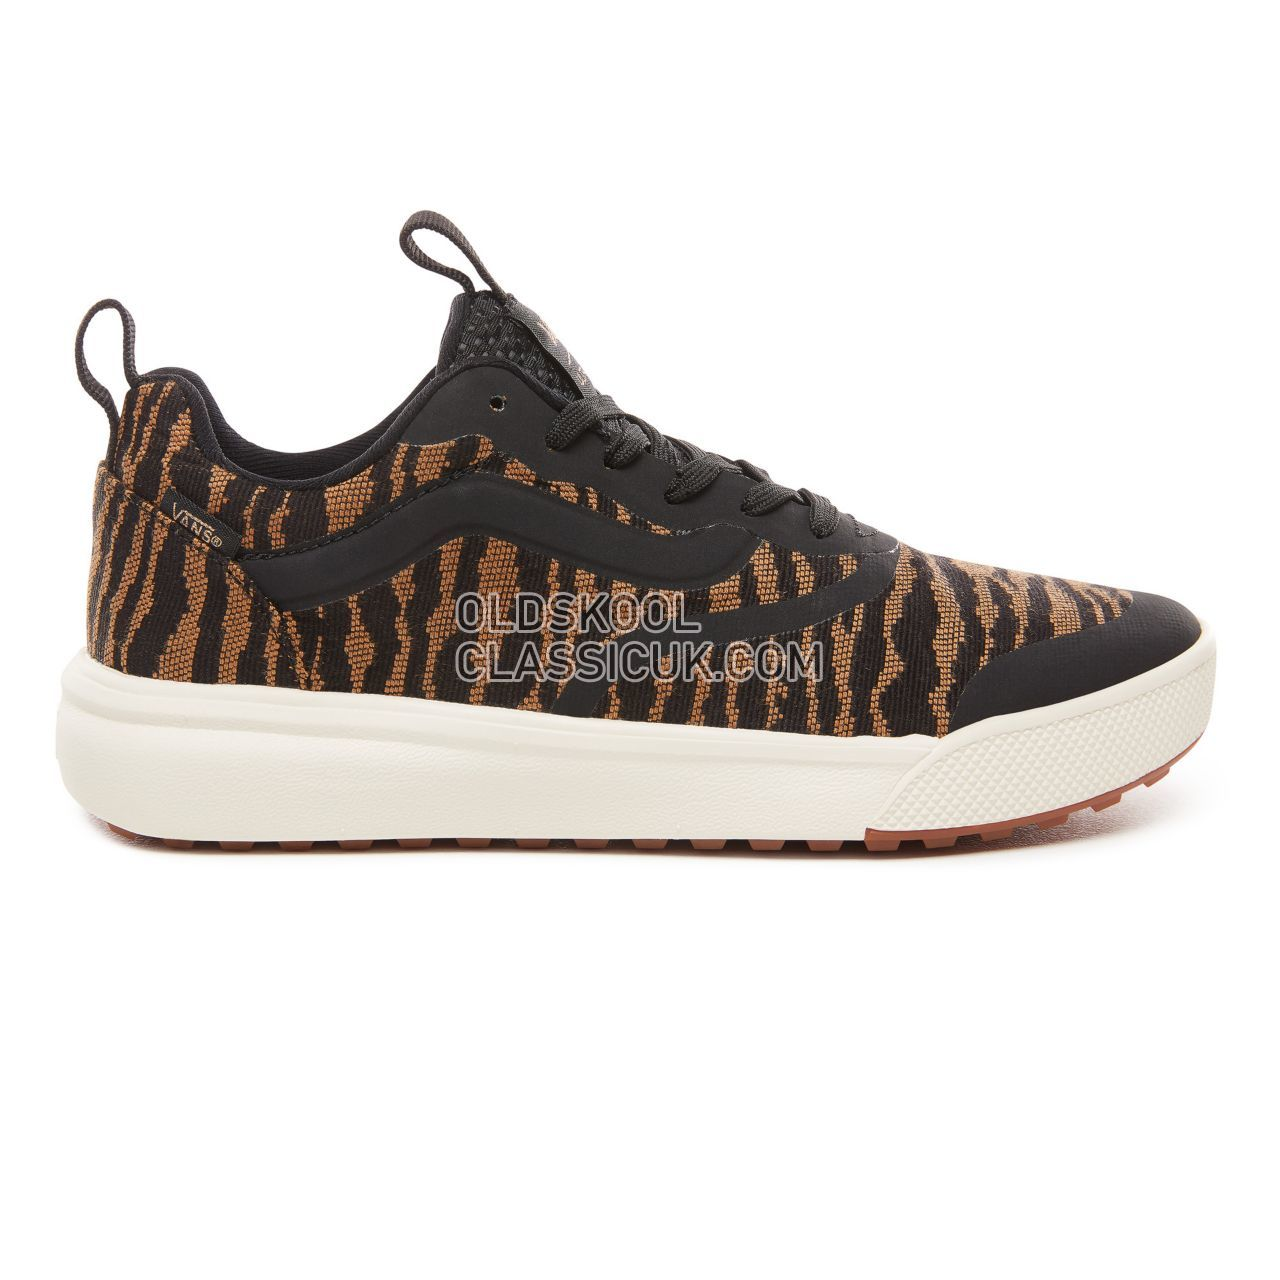 Vans Woven Tiger Ultrarange Rapidweld Sneakers Mens (Woven Tiger) Black VN0A3MVUUR3 Shoes